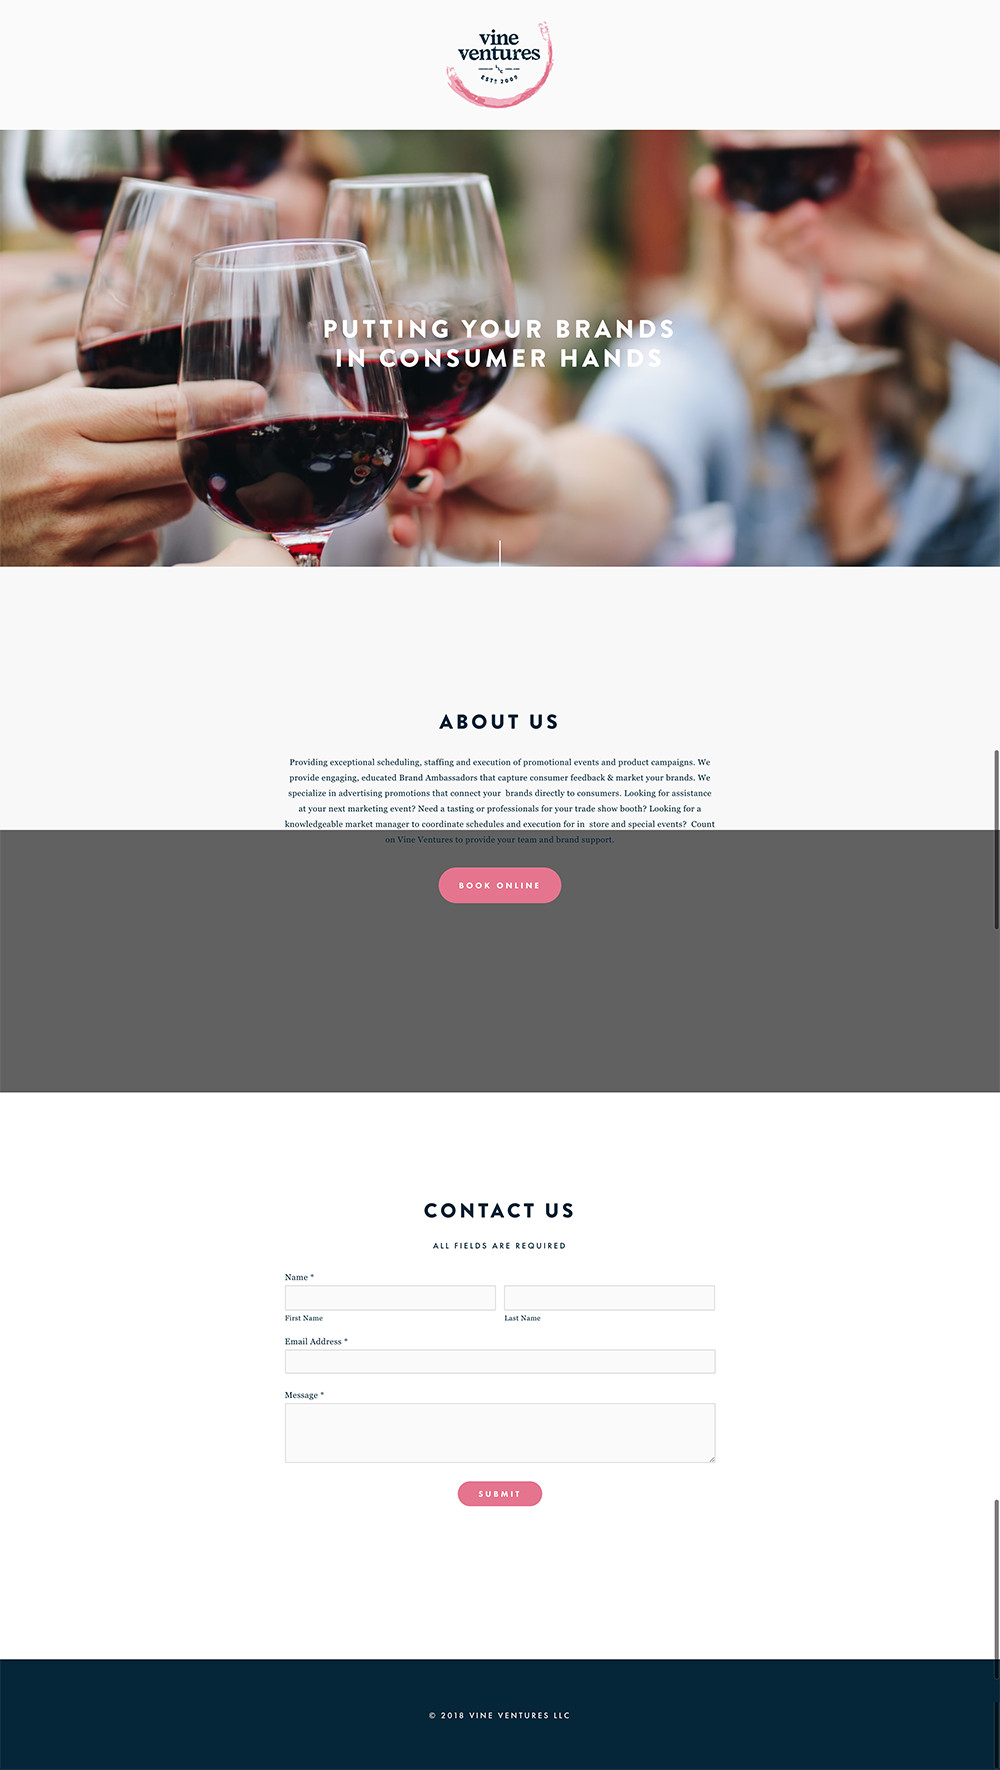 Vine Ventures marketing website